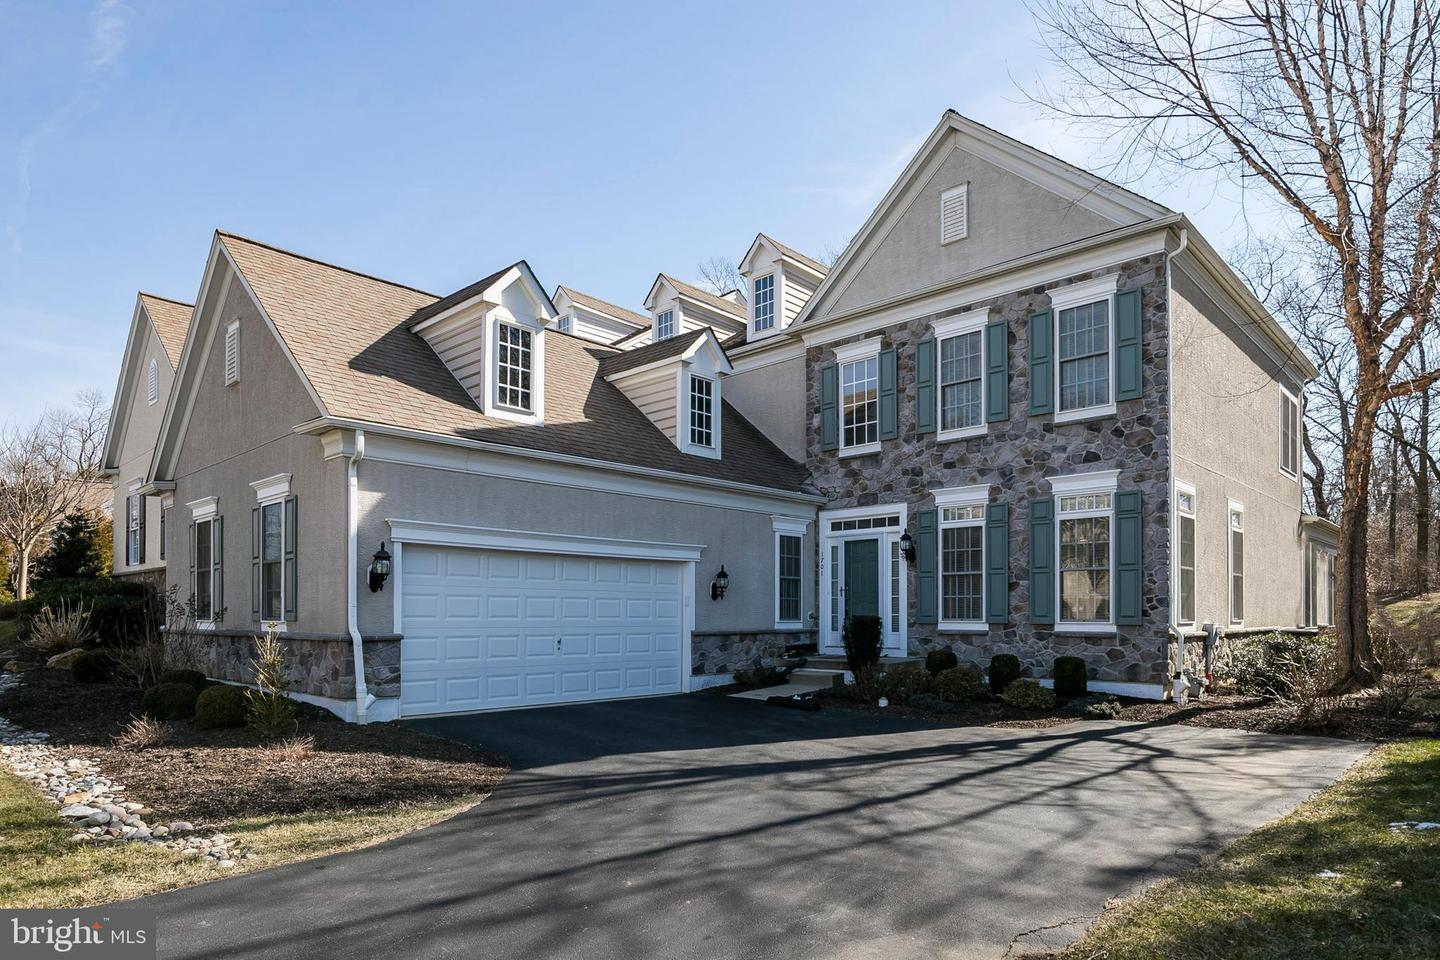 1701 HIBBERD LANE, WEST CHESTER, Pennsylvania